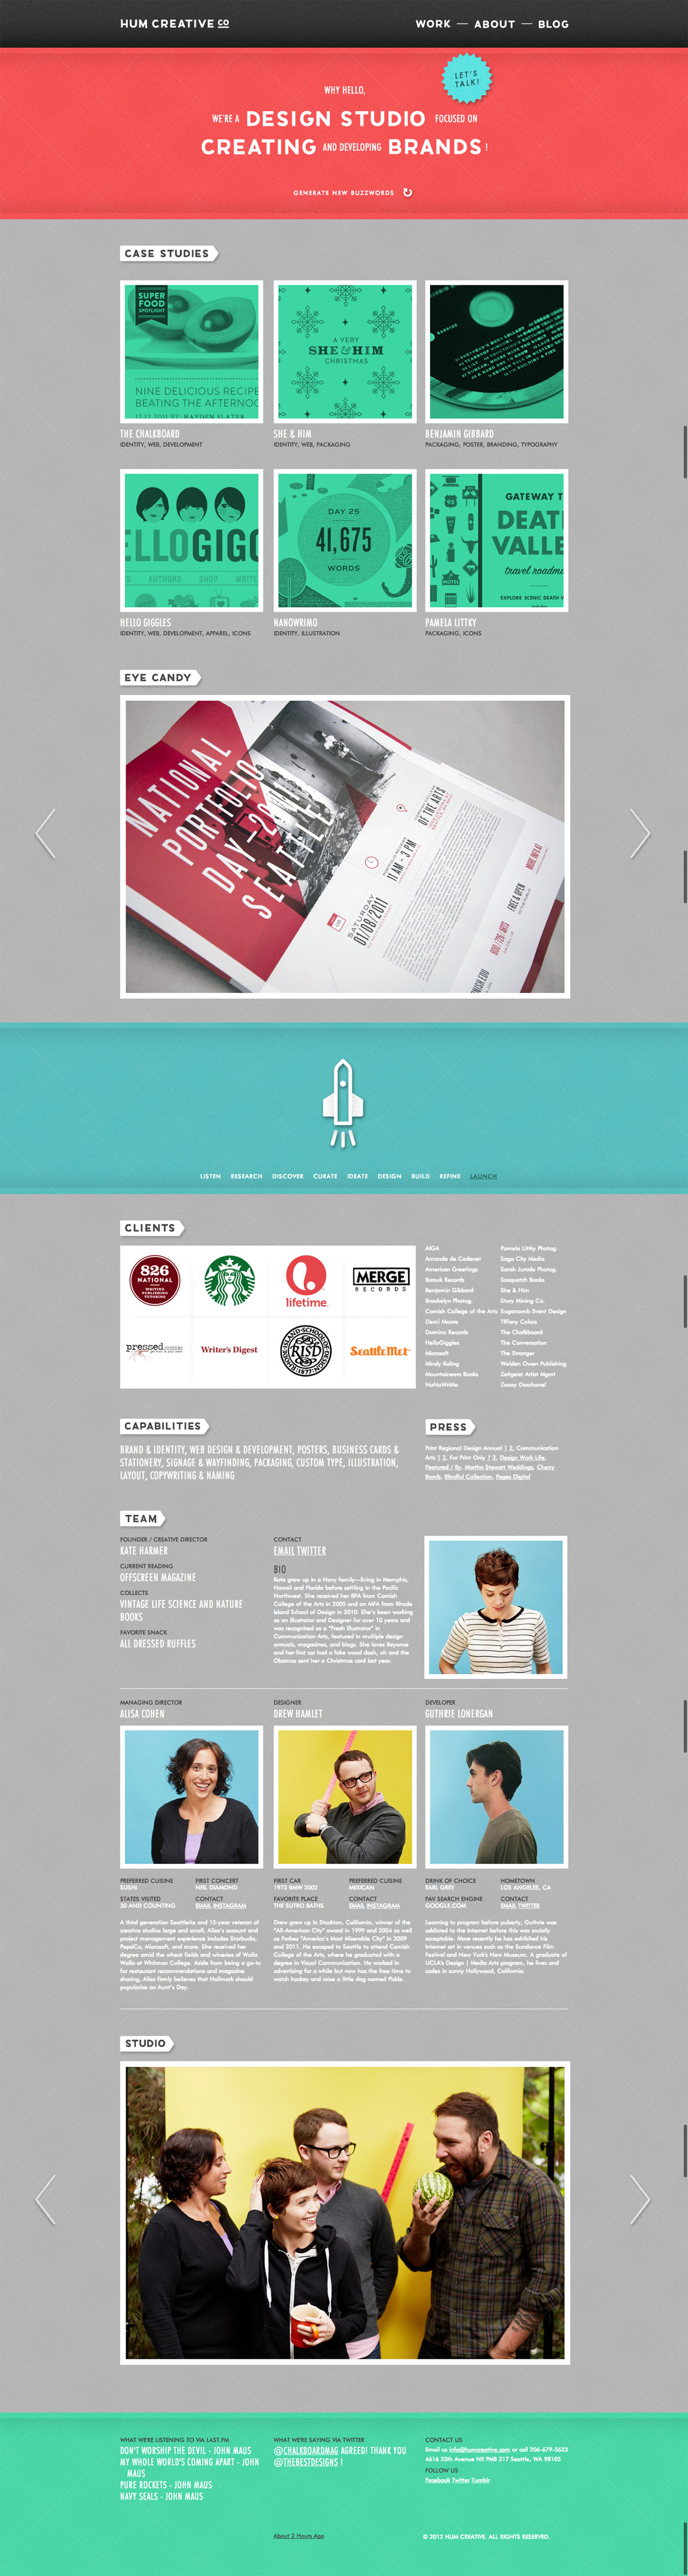 Hum Creative Co Website Screenshot